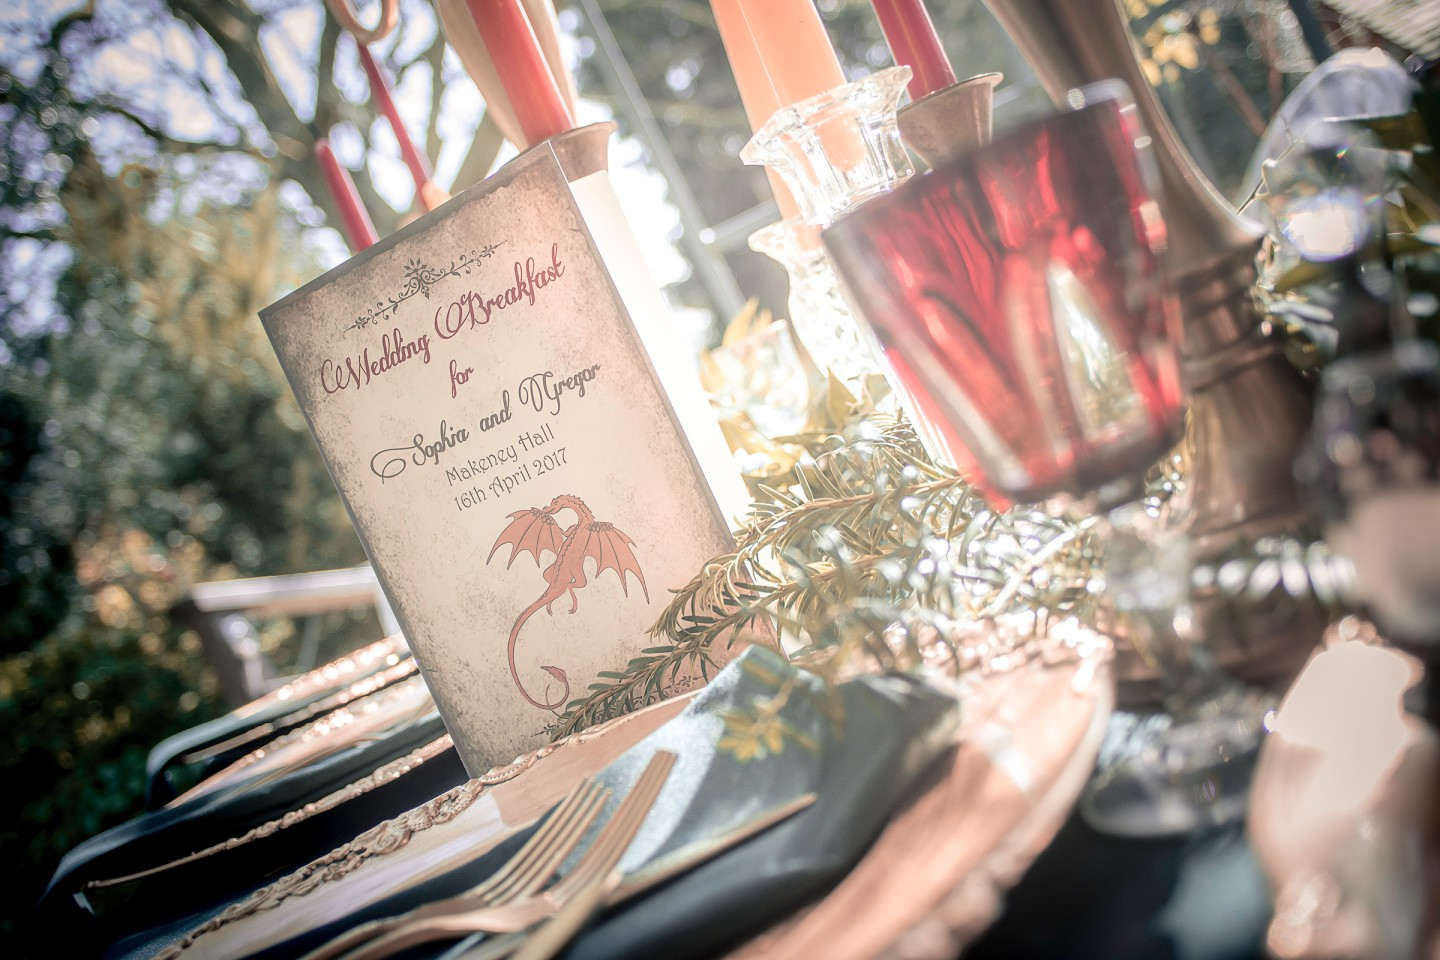 Photo Andy Douglas Photography, styling by that black and white cat weddings 1 - game of thrones wedding - alternative wedding 7